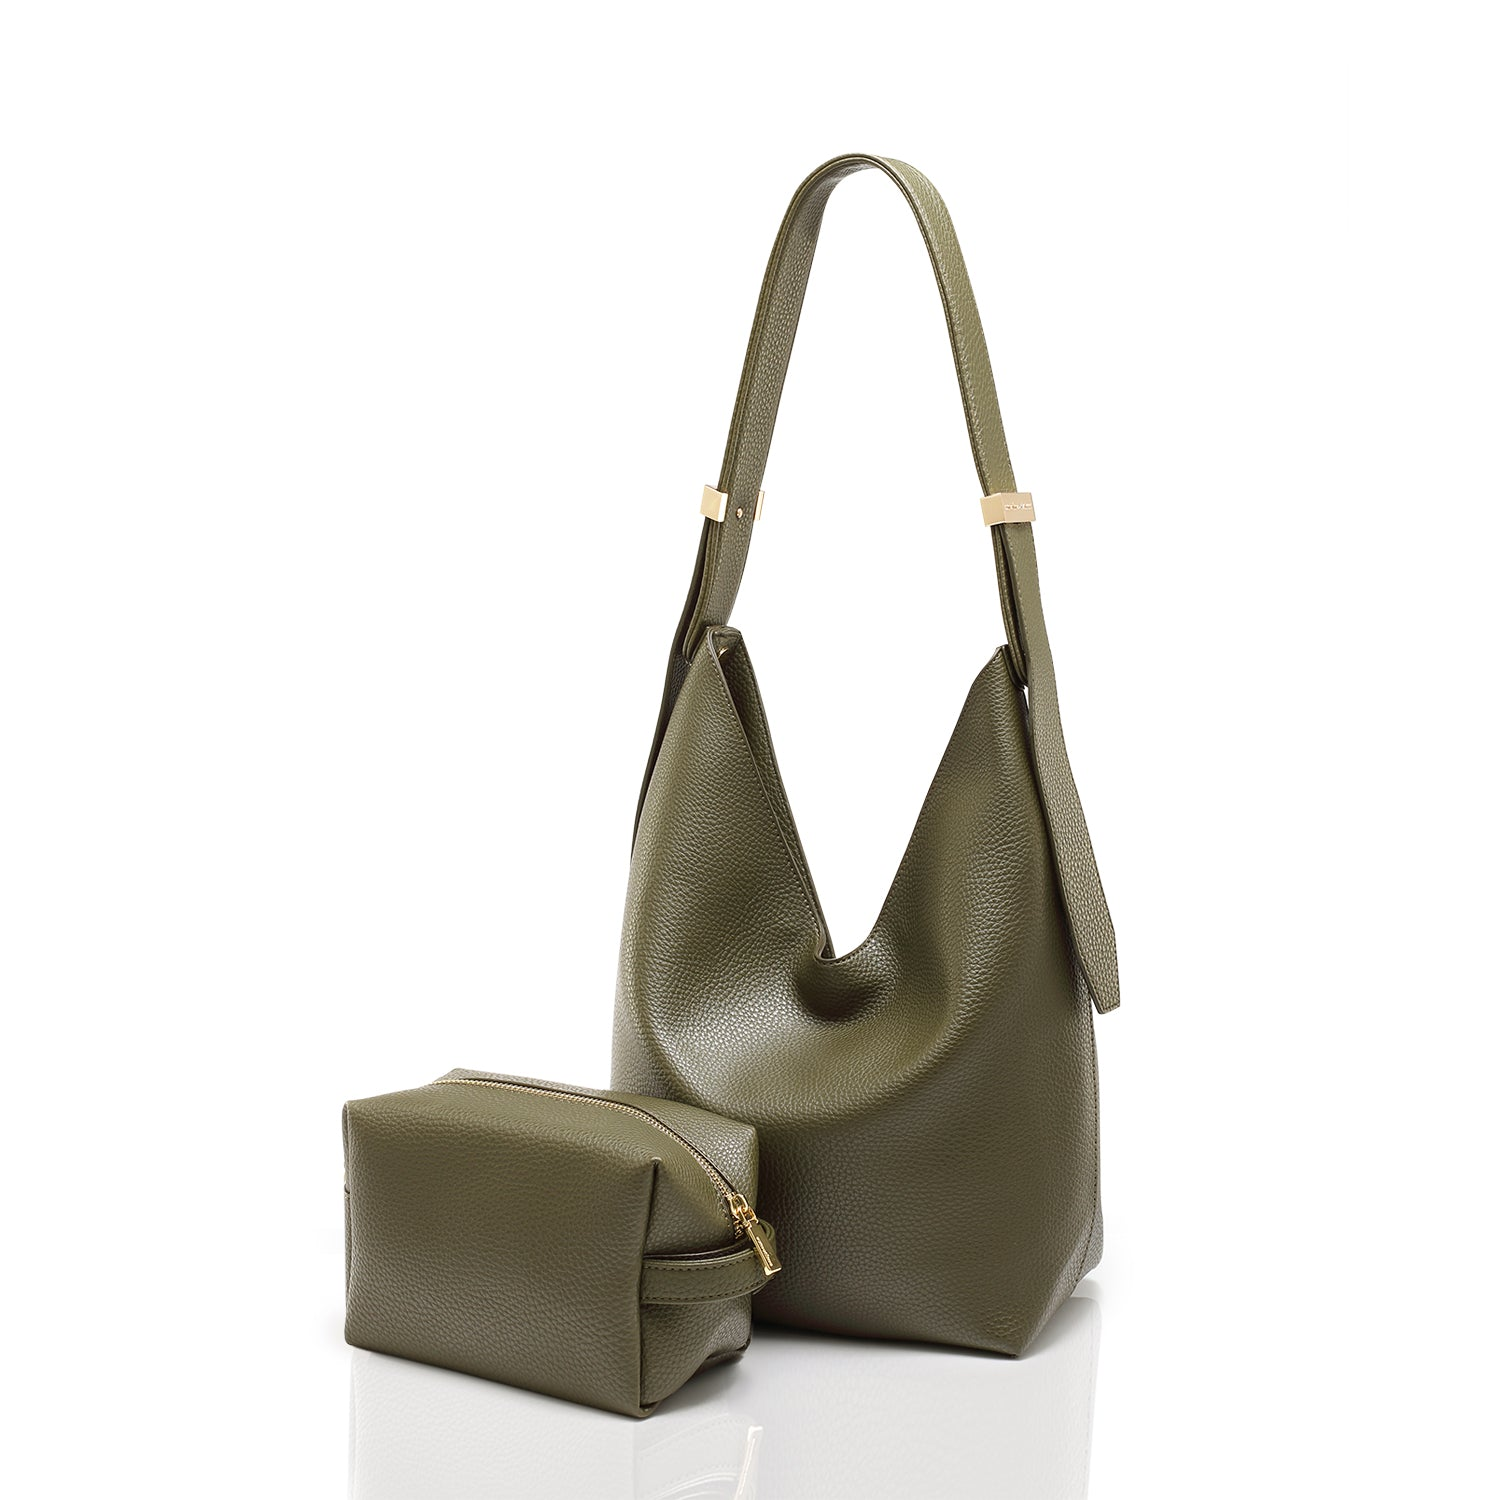 RIBAG HOBO MINI - OLIVE